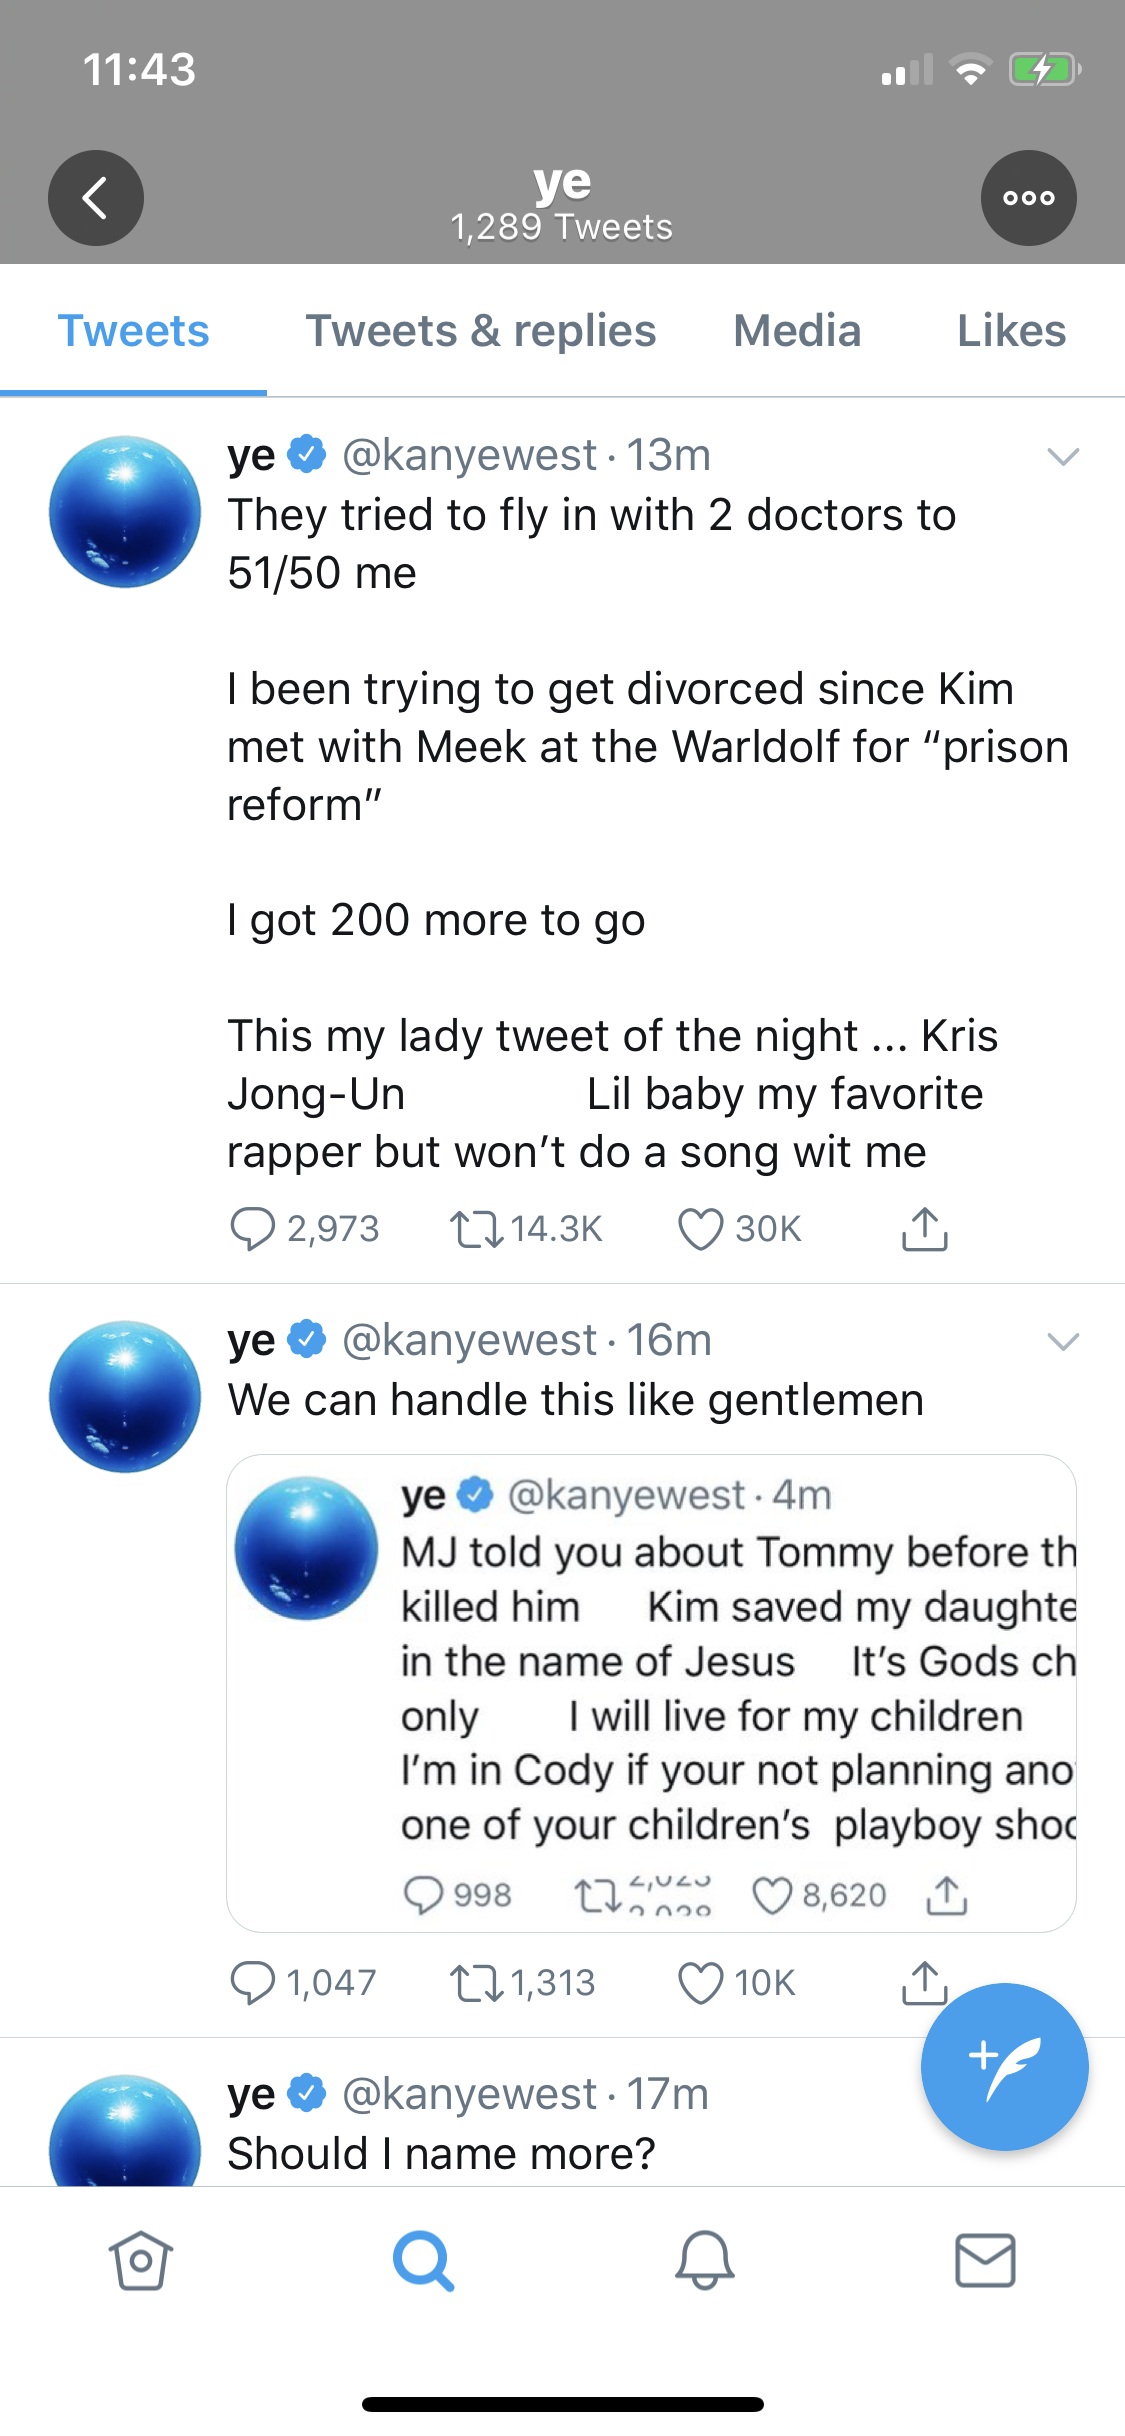 Kanye West Tweets About Divorcing Kim Kardashian As Mental Health Concerns Grow | Access